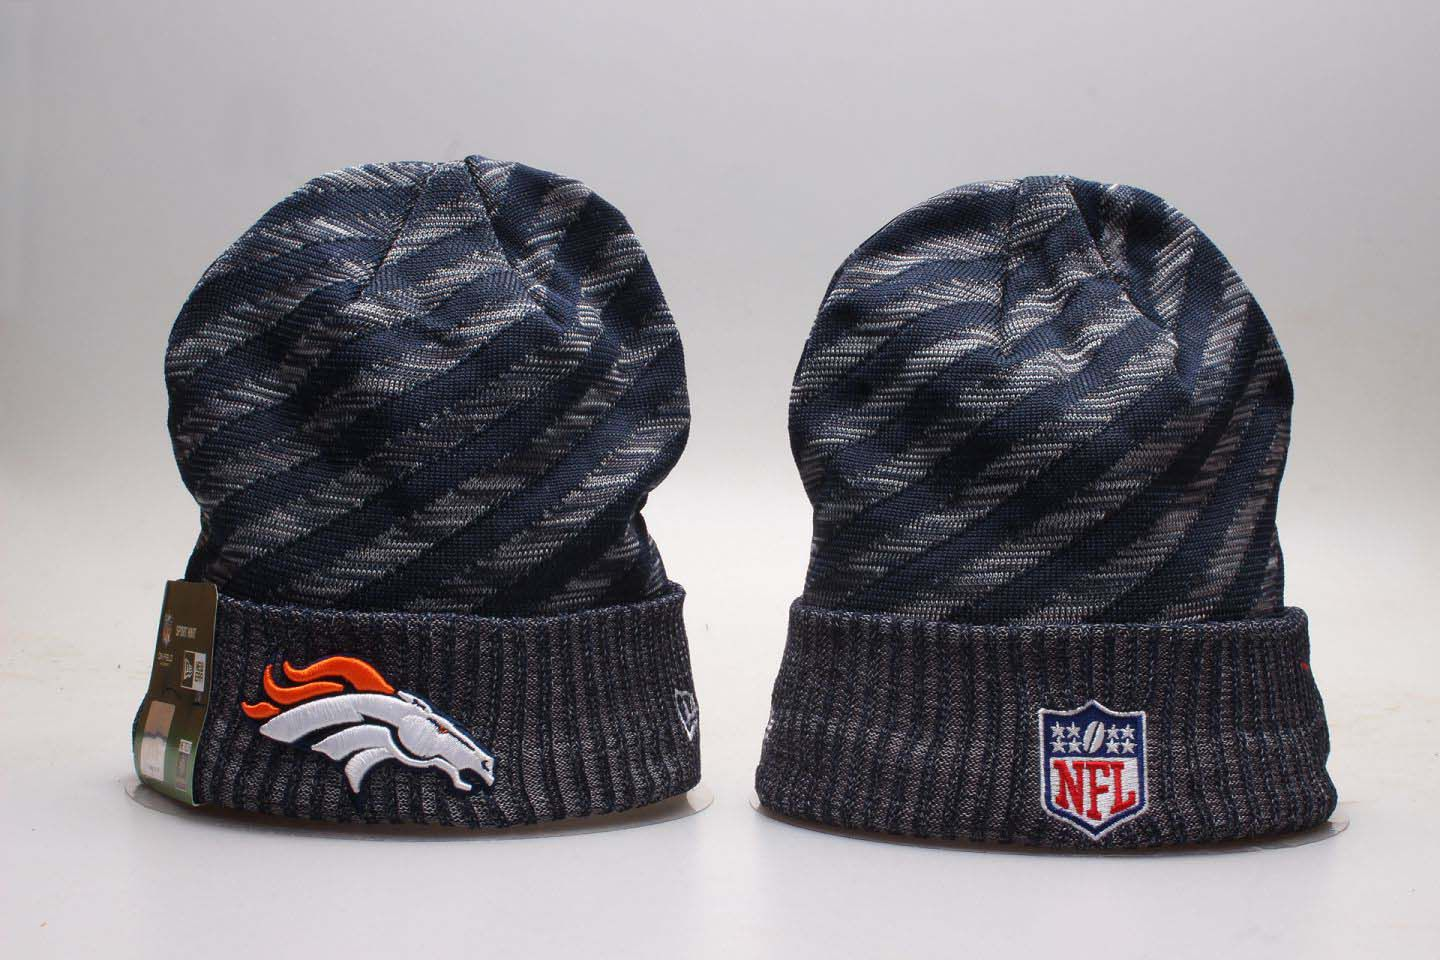 NFL Denver Broncos Beanie hot hat